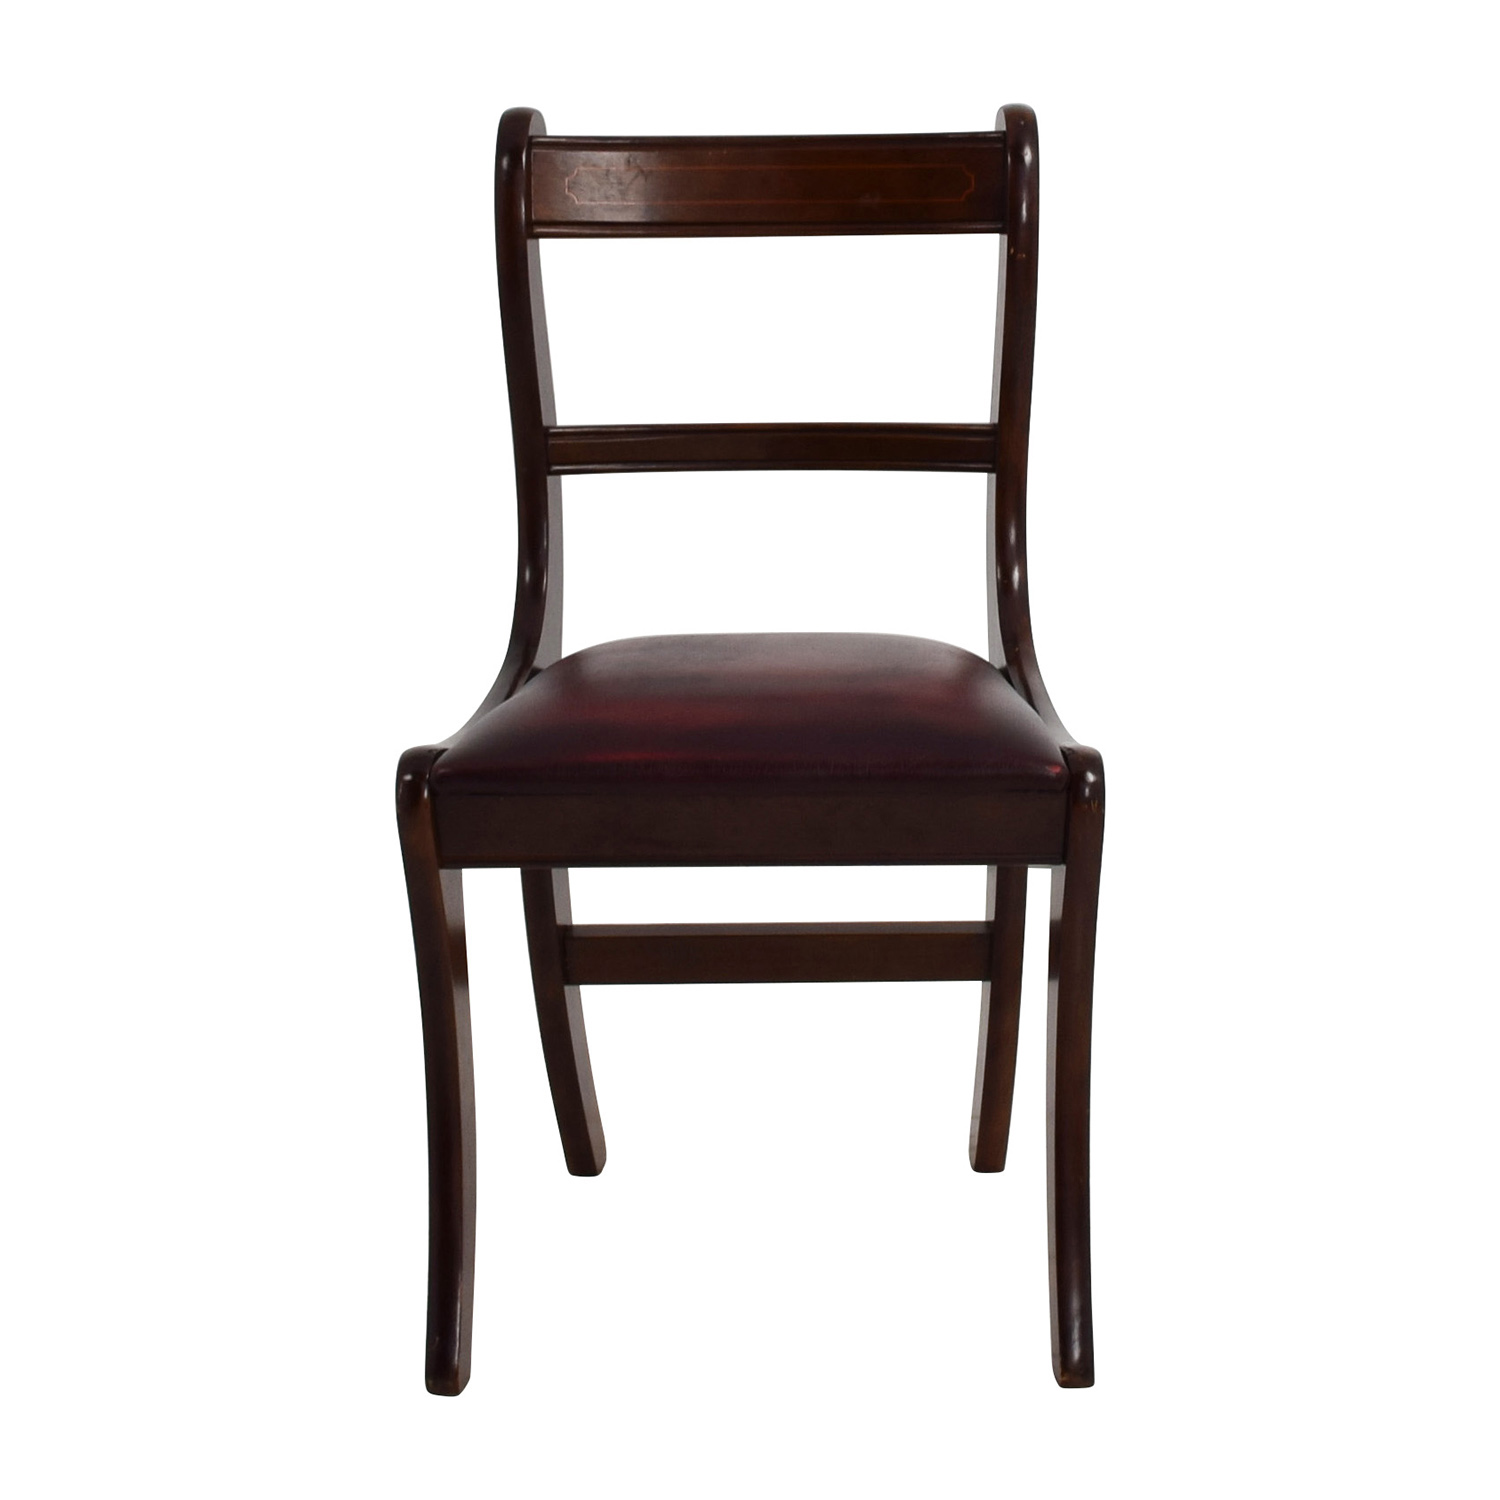 buy  Dark Wood Chair with Leather Seat online